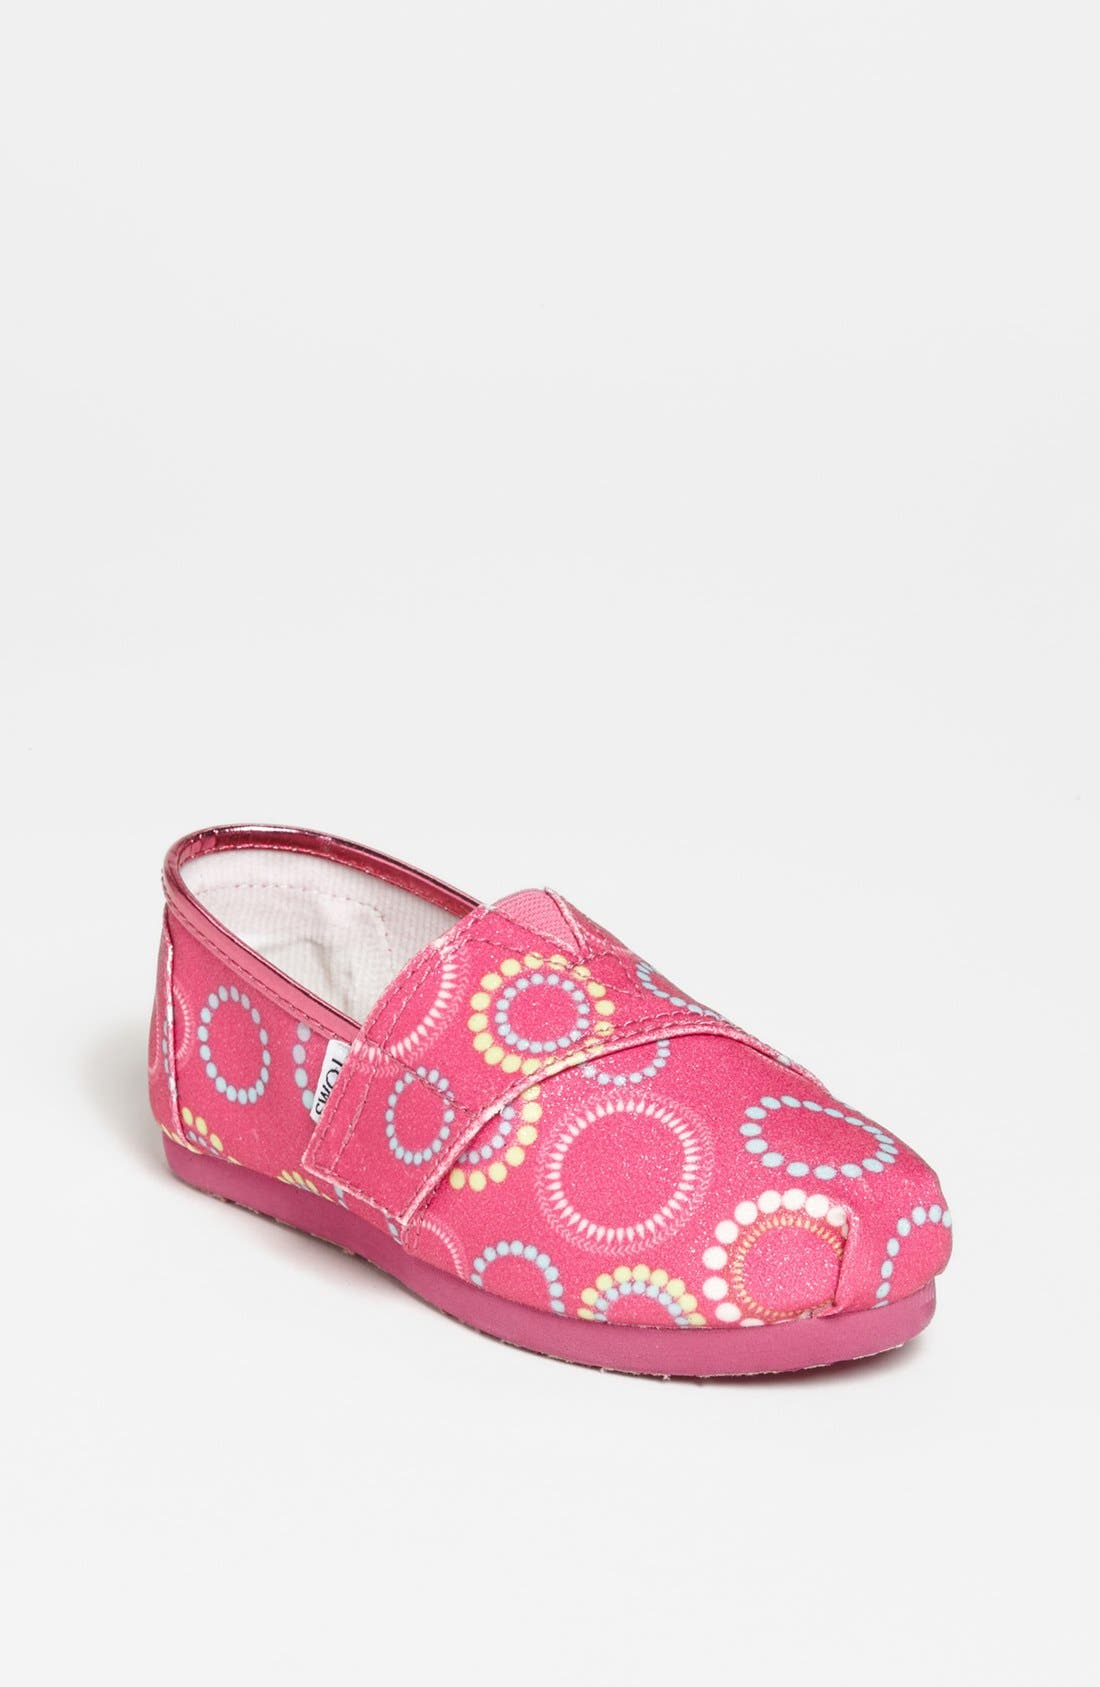 Alternate Image 1 Selected - TOMS 'Classic Tiny - Circles Glitter' Slip-On (Baby, Walker & Toddler)